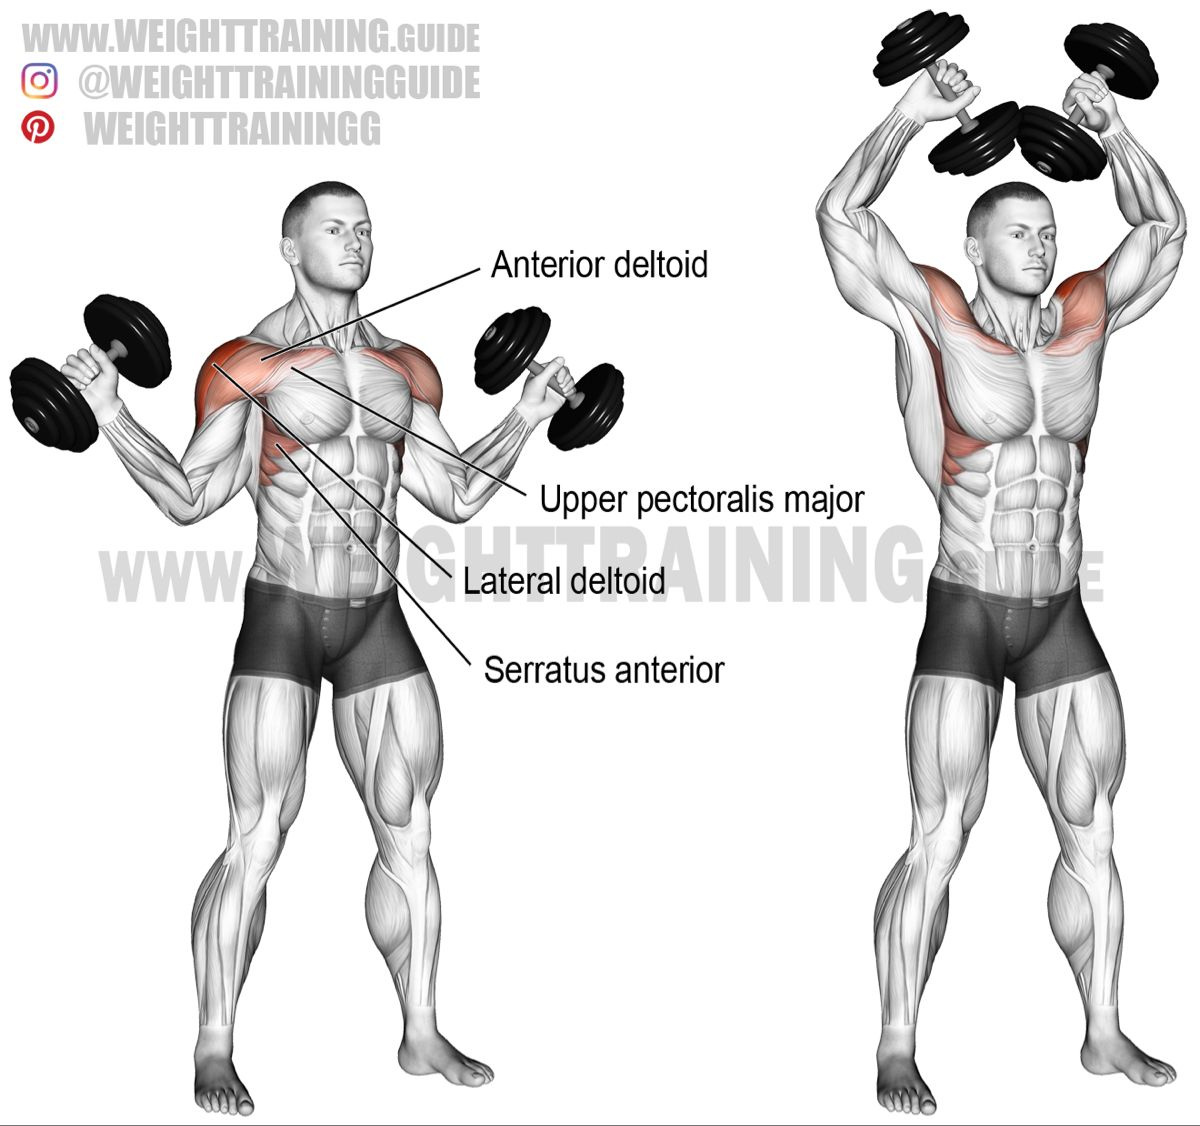 Dumbbell W Press Exercise Instructions And Video Weight Training Guide Deltoid Workout Full Body Workout Routine Shoulder Workout